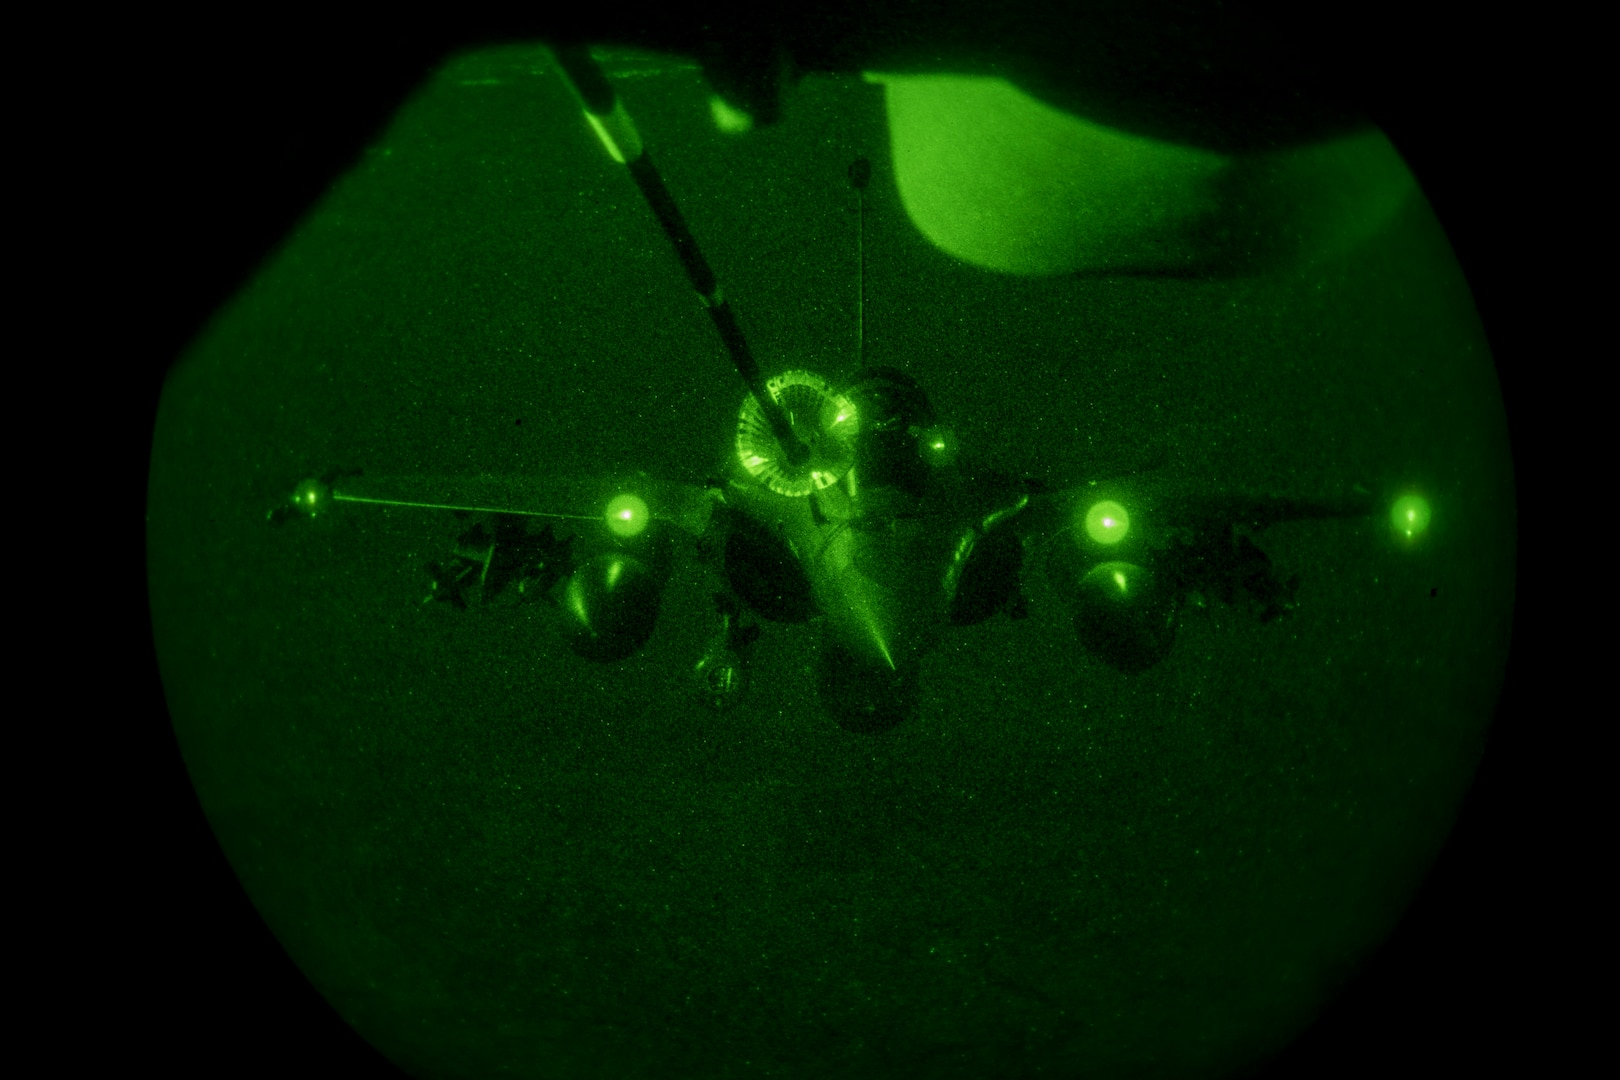 A U.S. Air Force KC-10 Extender boom operator with the 908th Expeditionary Air Refueling Squadron conducts an aerial refueling with a French Air Force Dassault Rafale fighter aircraft in support of Operation Inherent Resolve, Jan. 11, 2020.